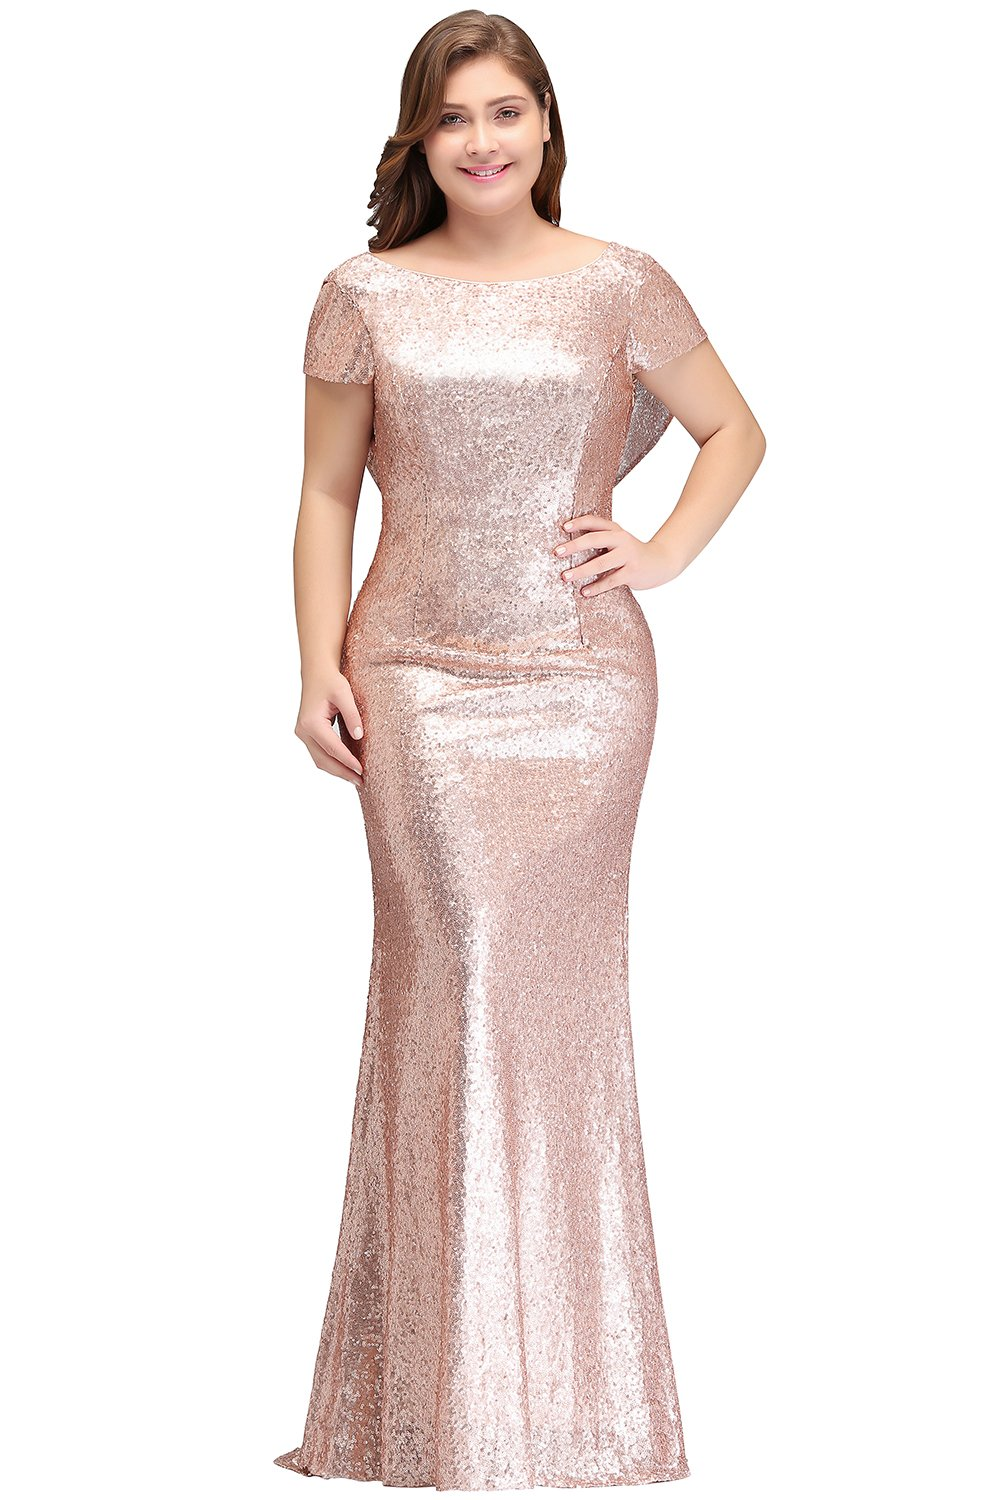 76eab93891 MisShow Women Plus Size Rose Gold Long Sequin Bridesmaid Dress Prom/Evening  Gowns 24W